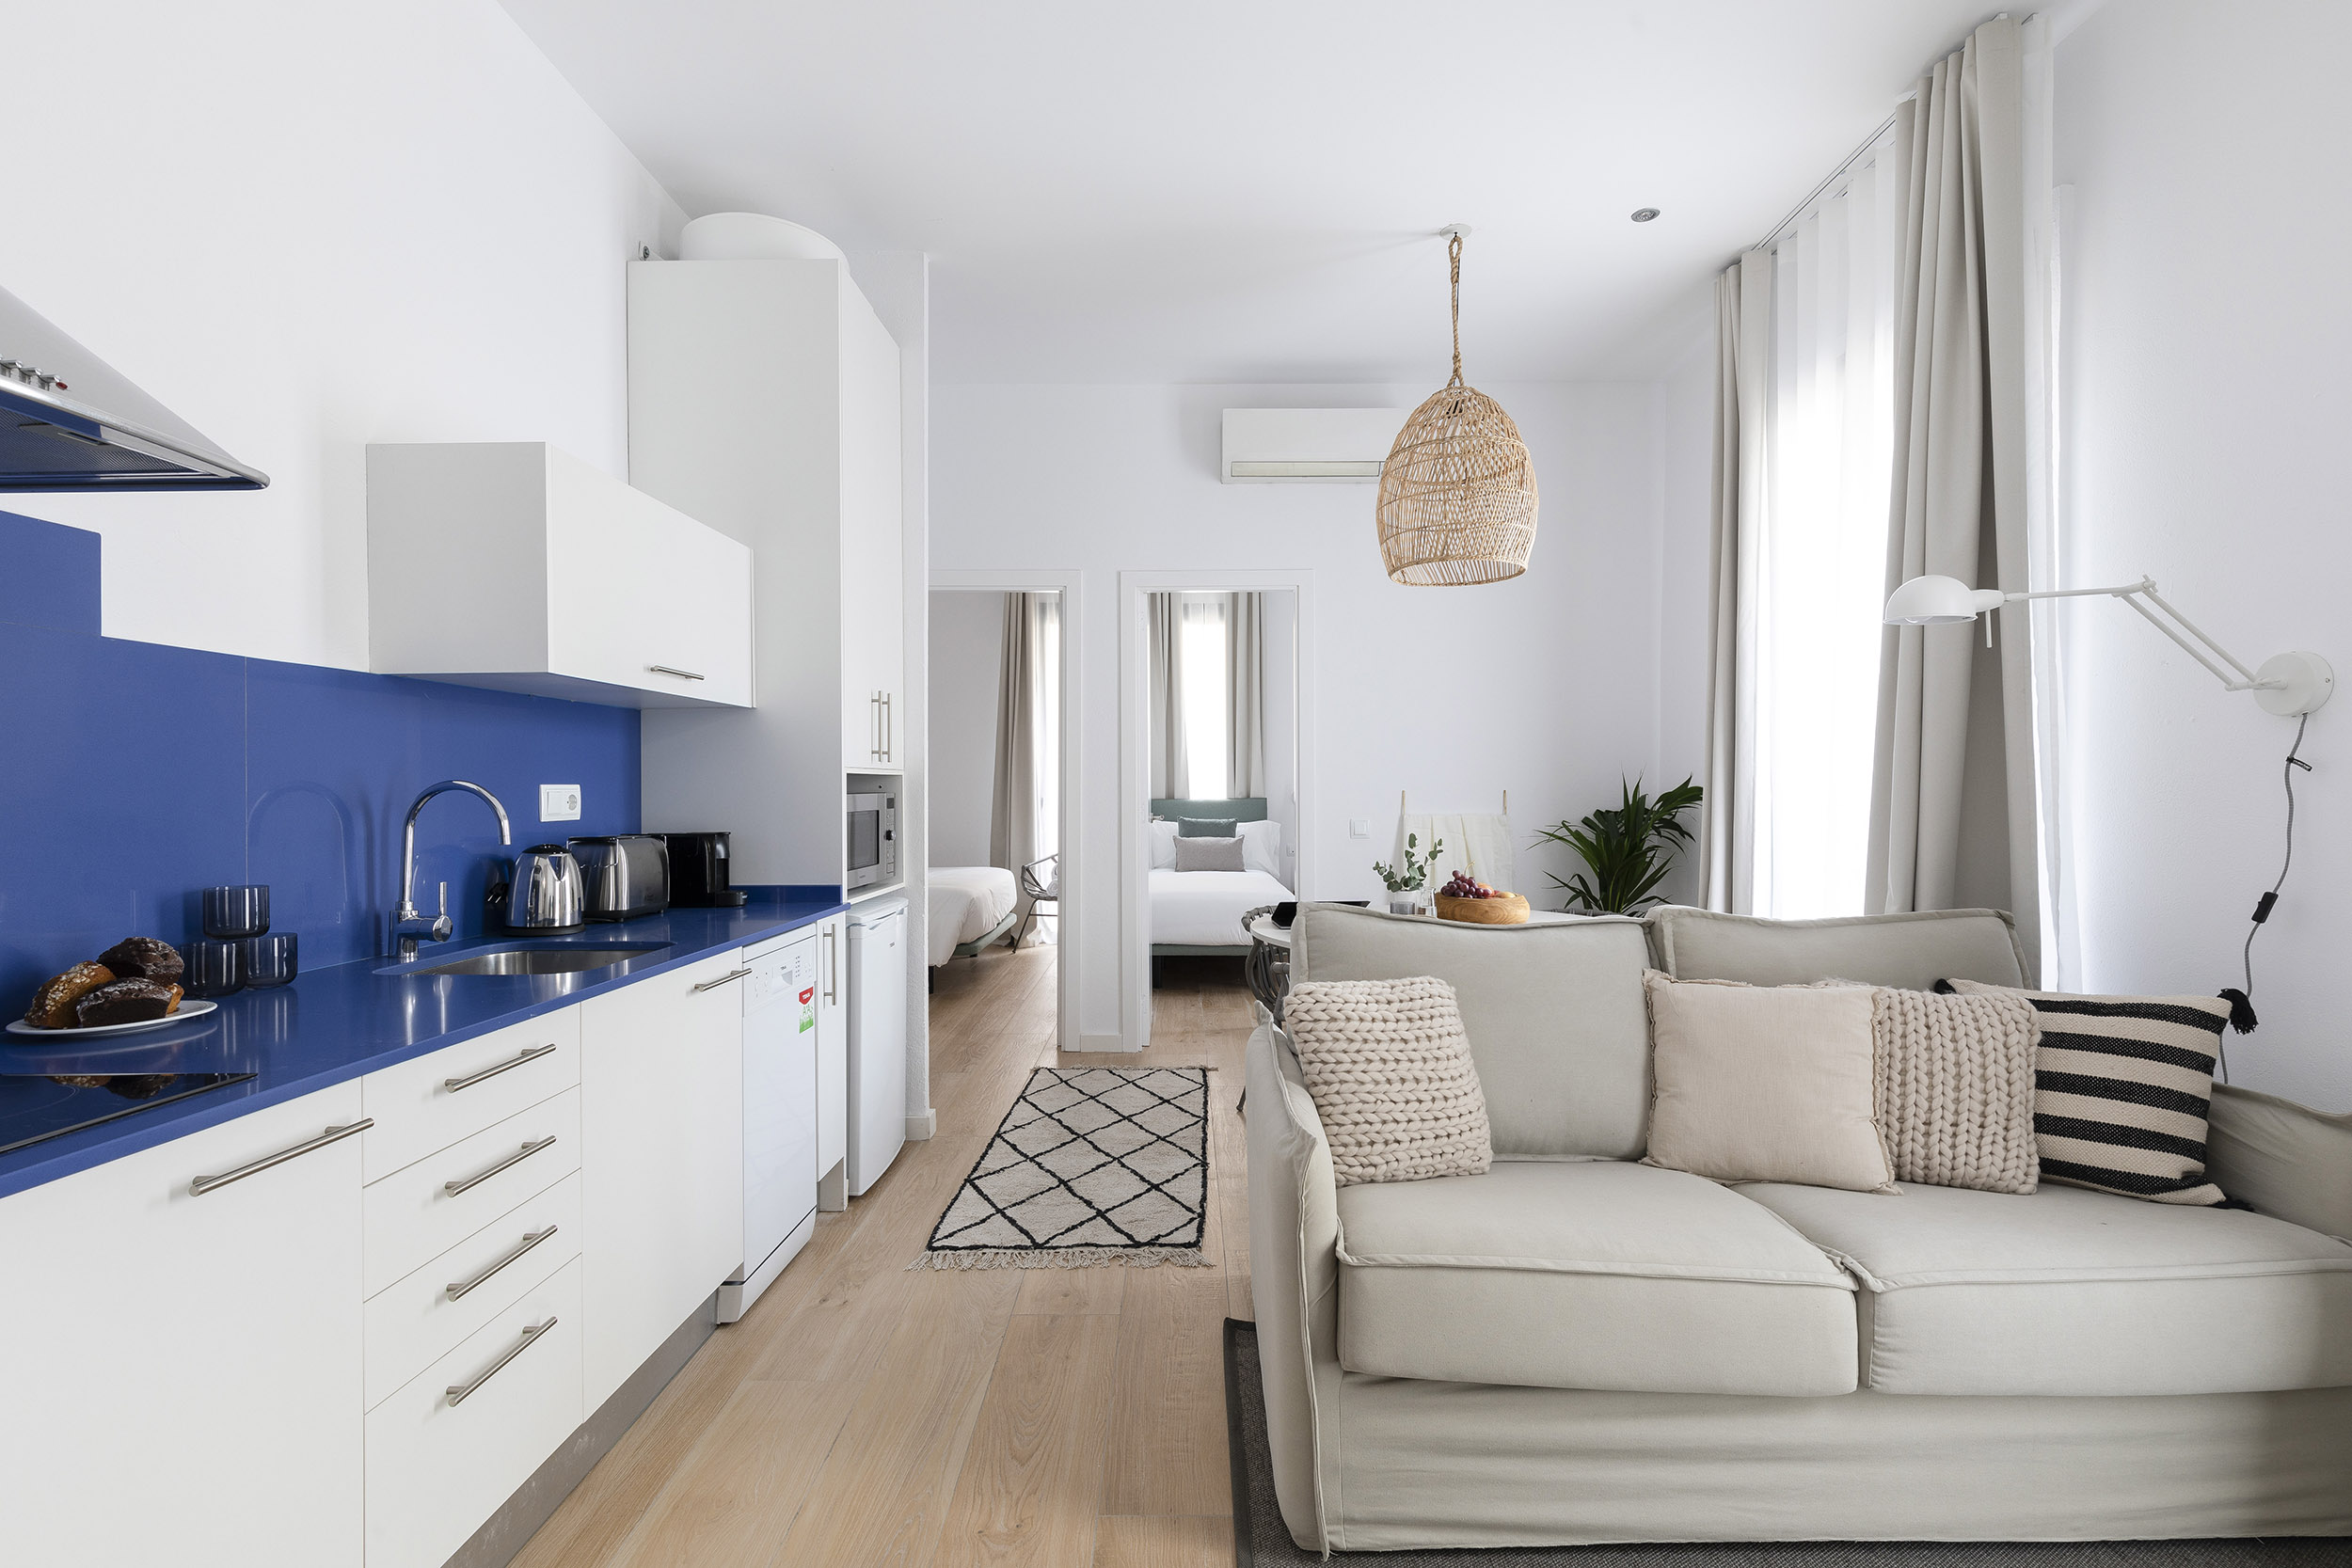 New in Barcelona - Aspasios Verdi Apartments in the heart of Gracia